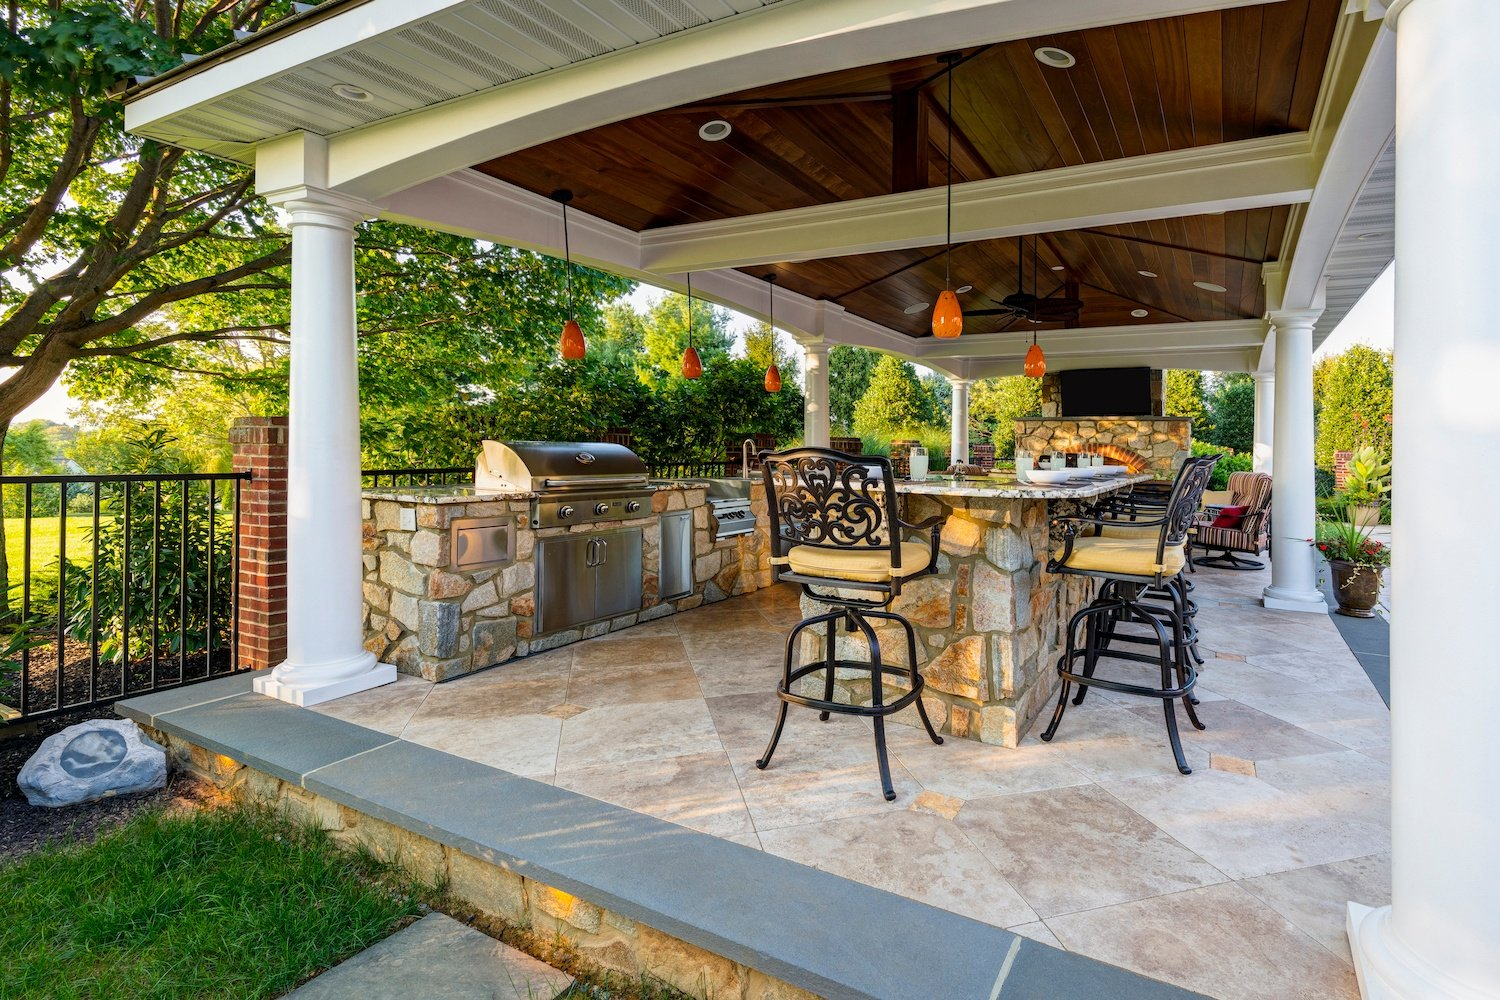 outdoor kitchen pavilion with grill and bar